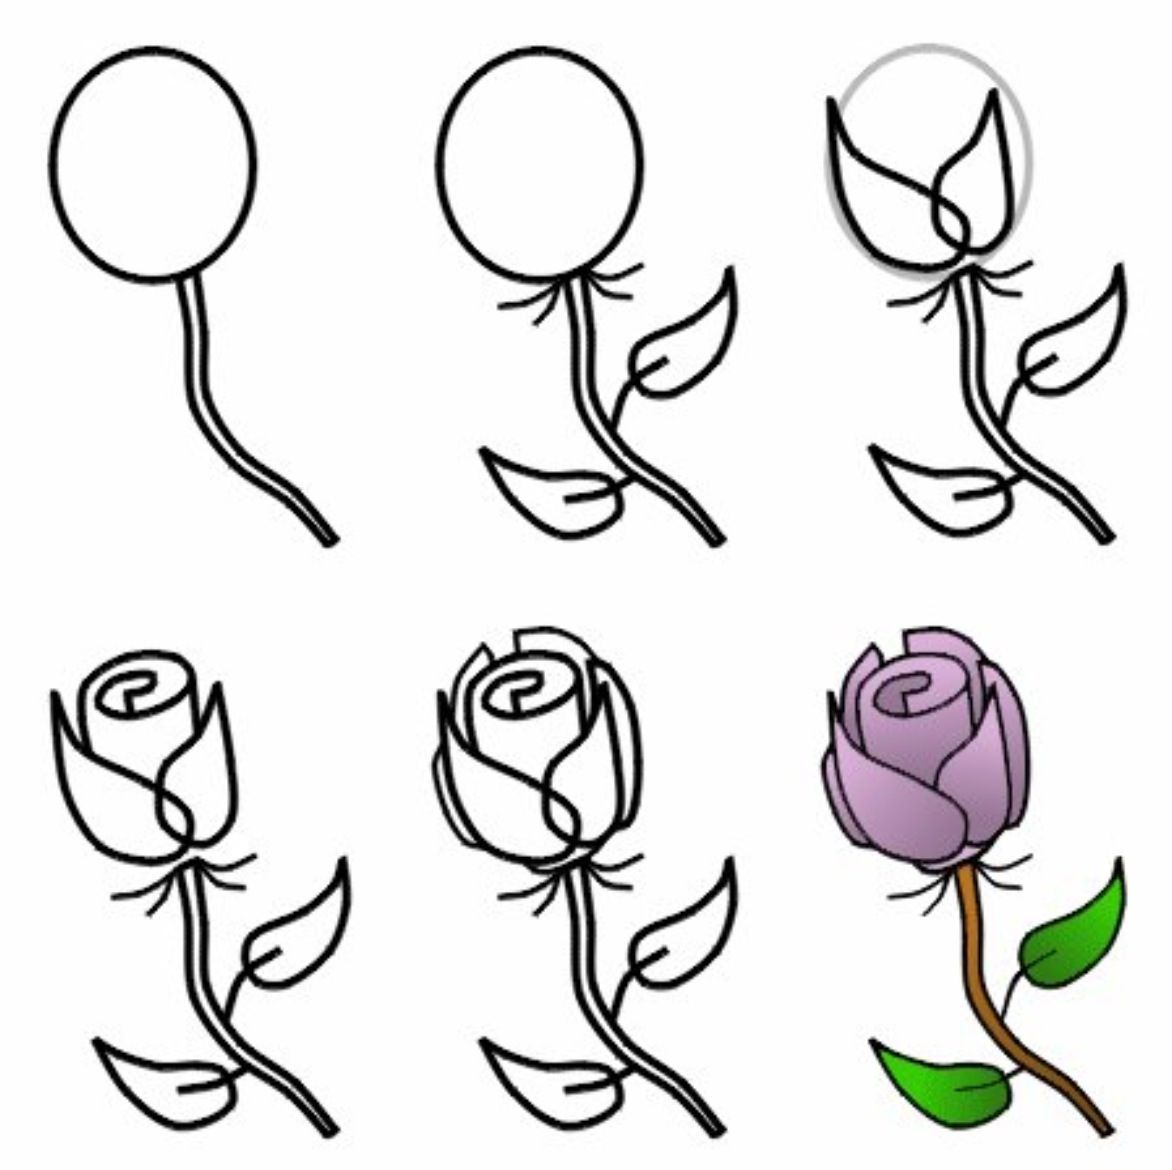 Uncategorized How To Draw A Simple Rose For Beginners pin by natalia jaramillo on drawings pinterest draw doodles how to a rose step with pencil